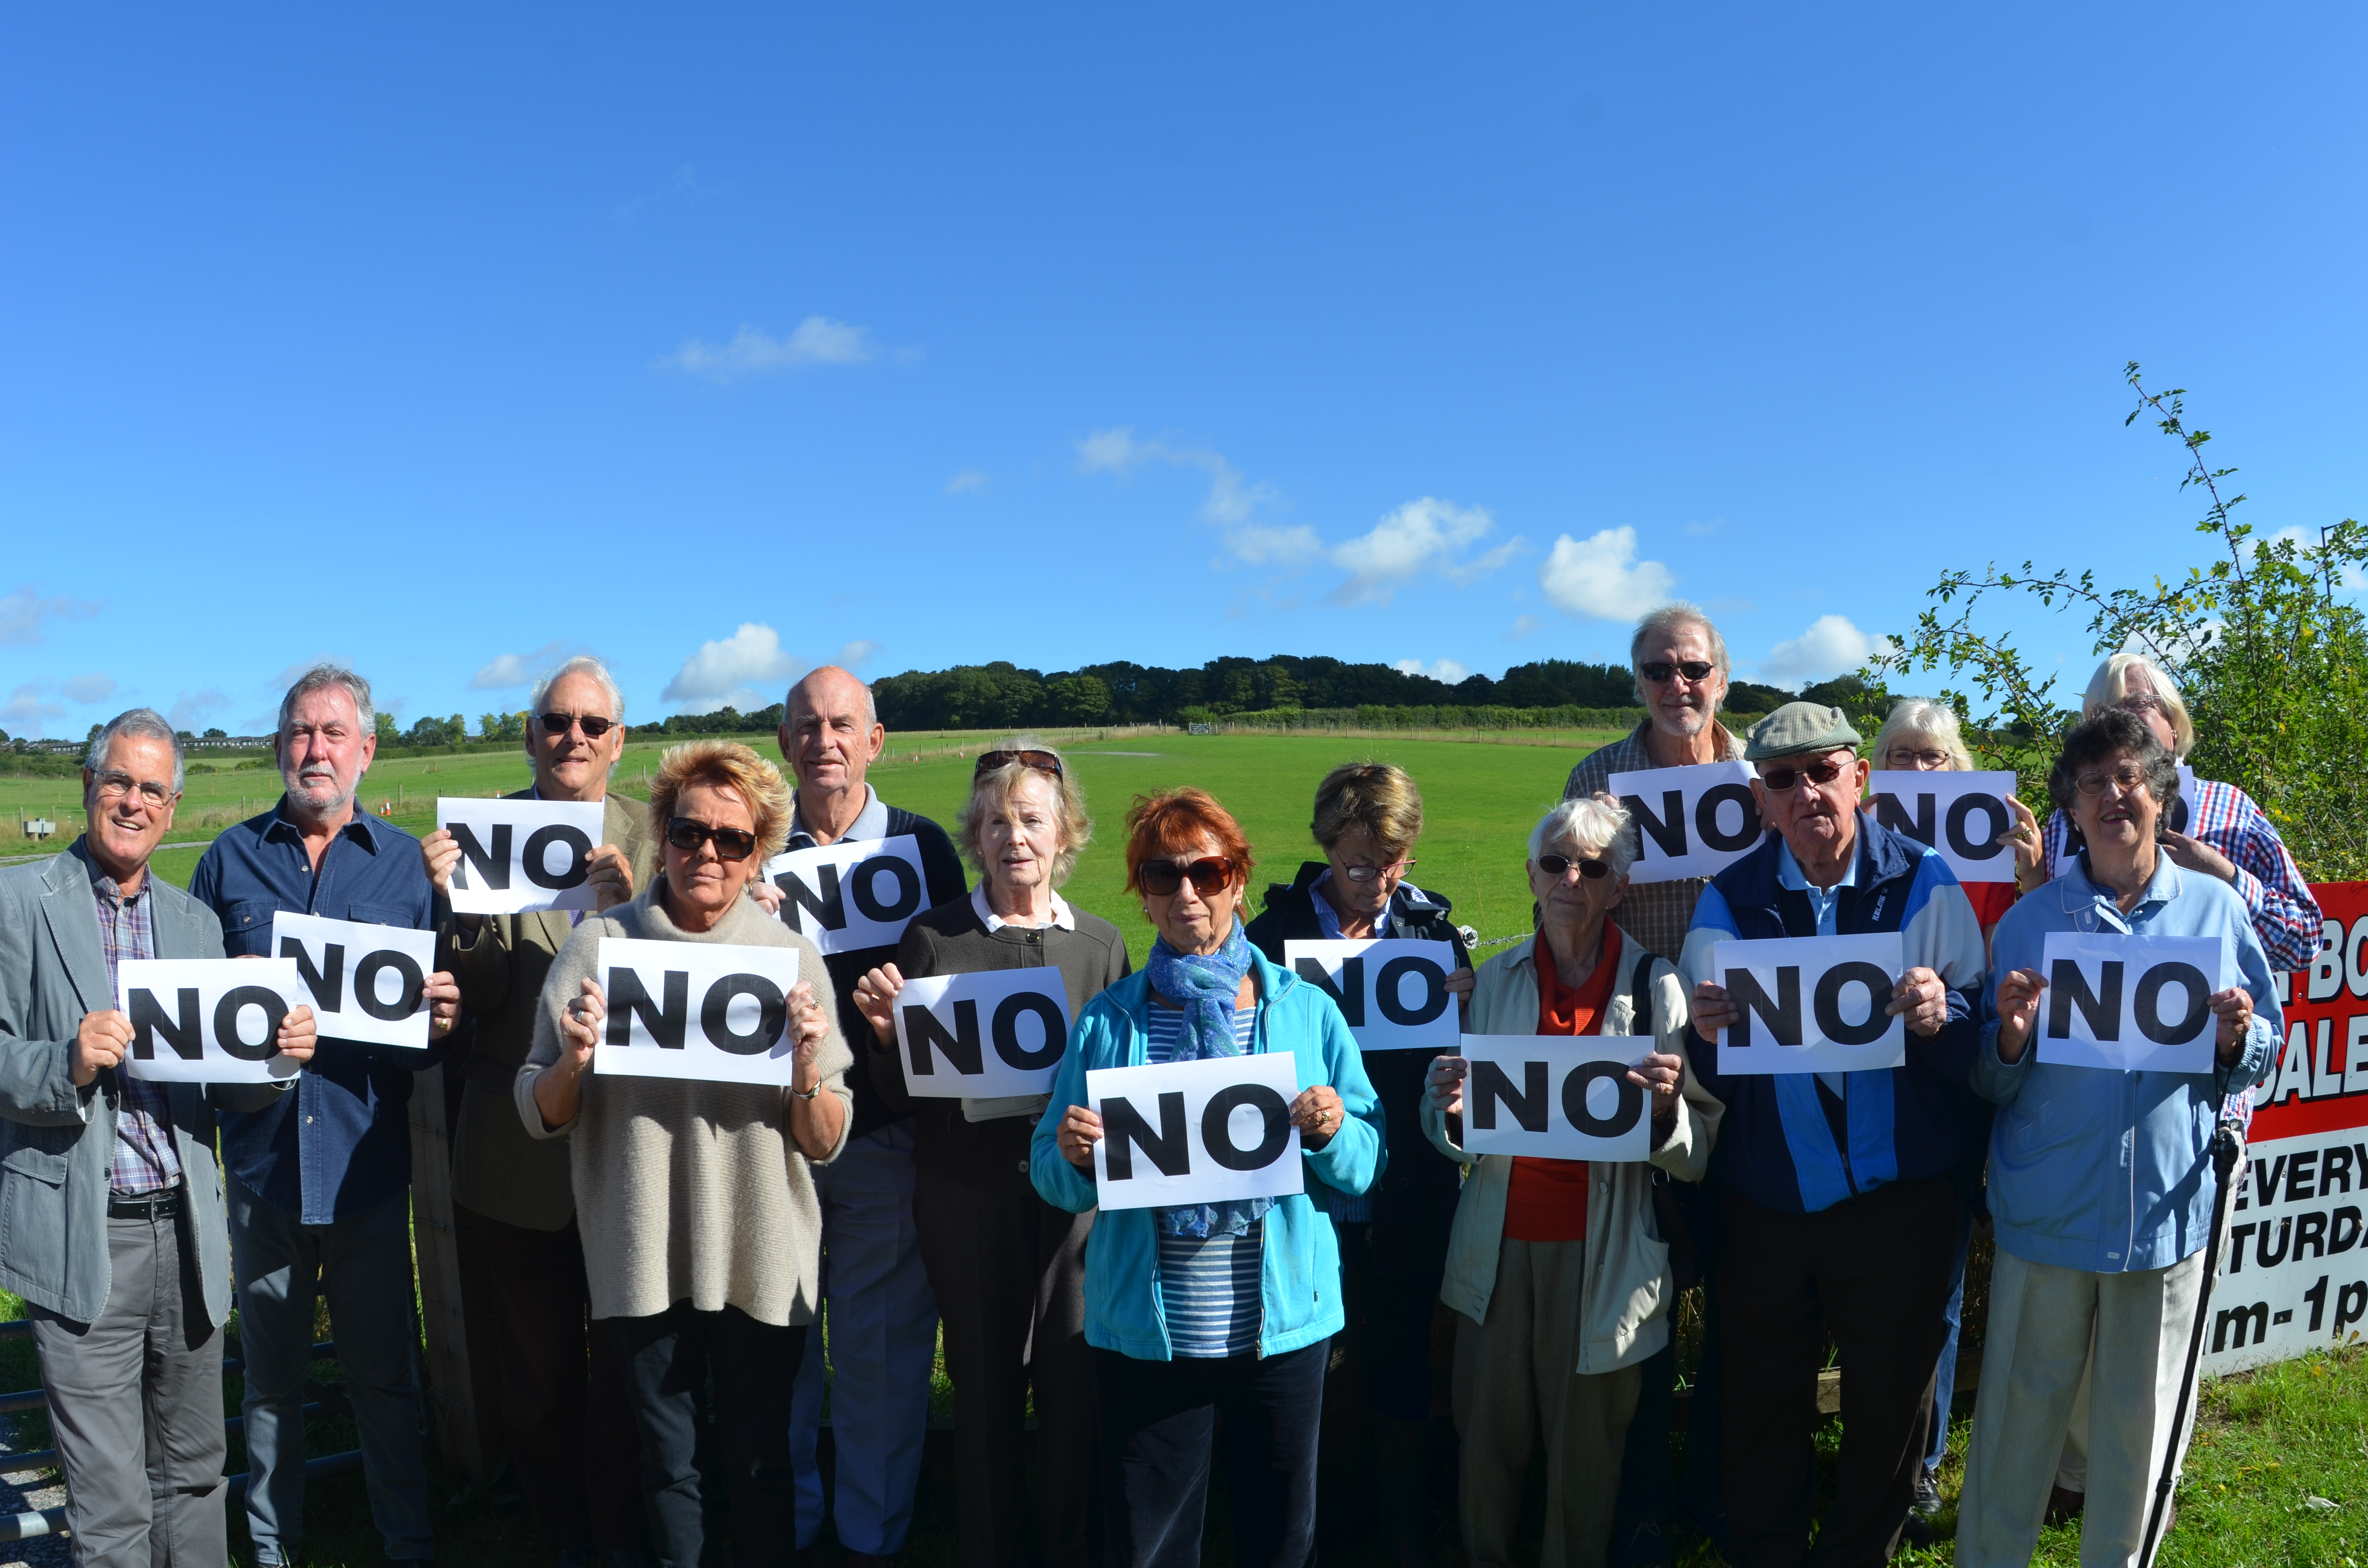 PERA residents protest against against the development of Marchmont Fields last year